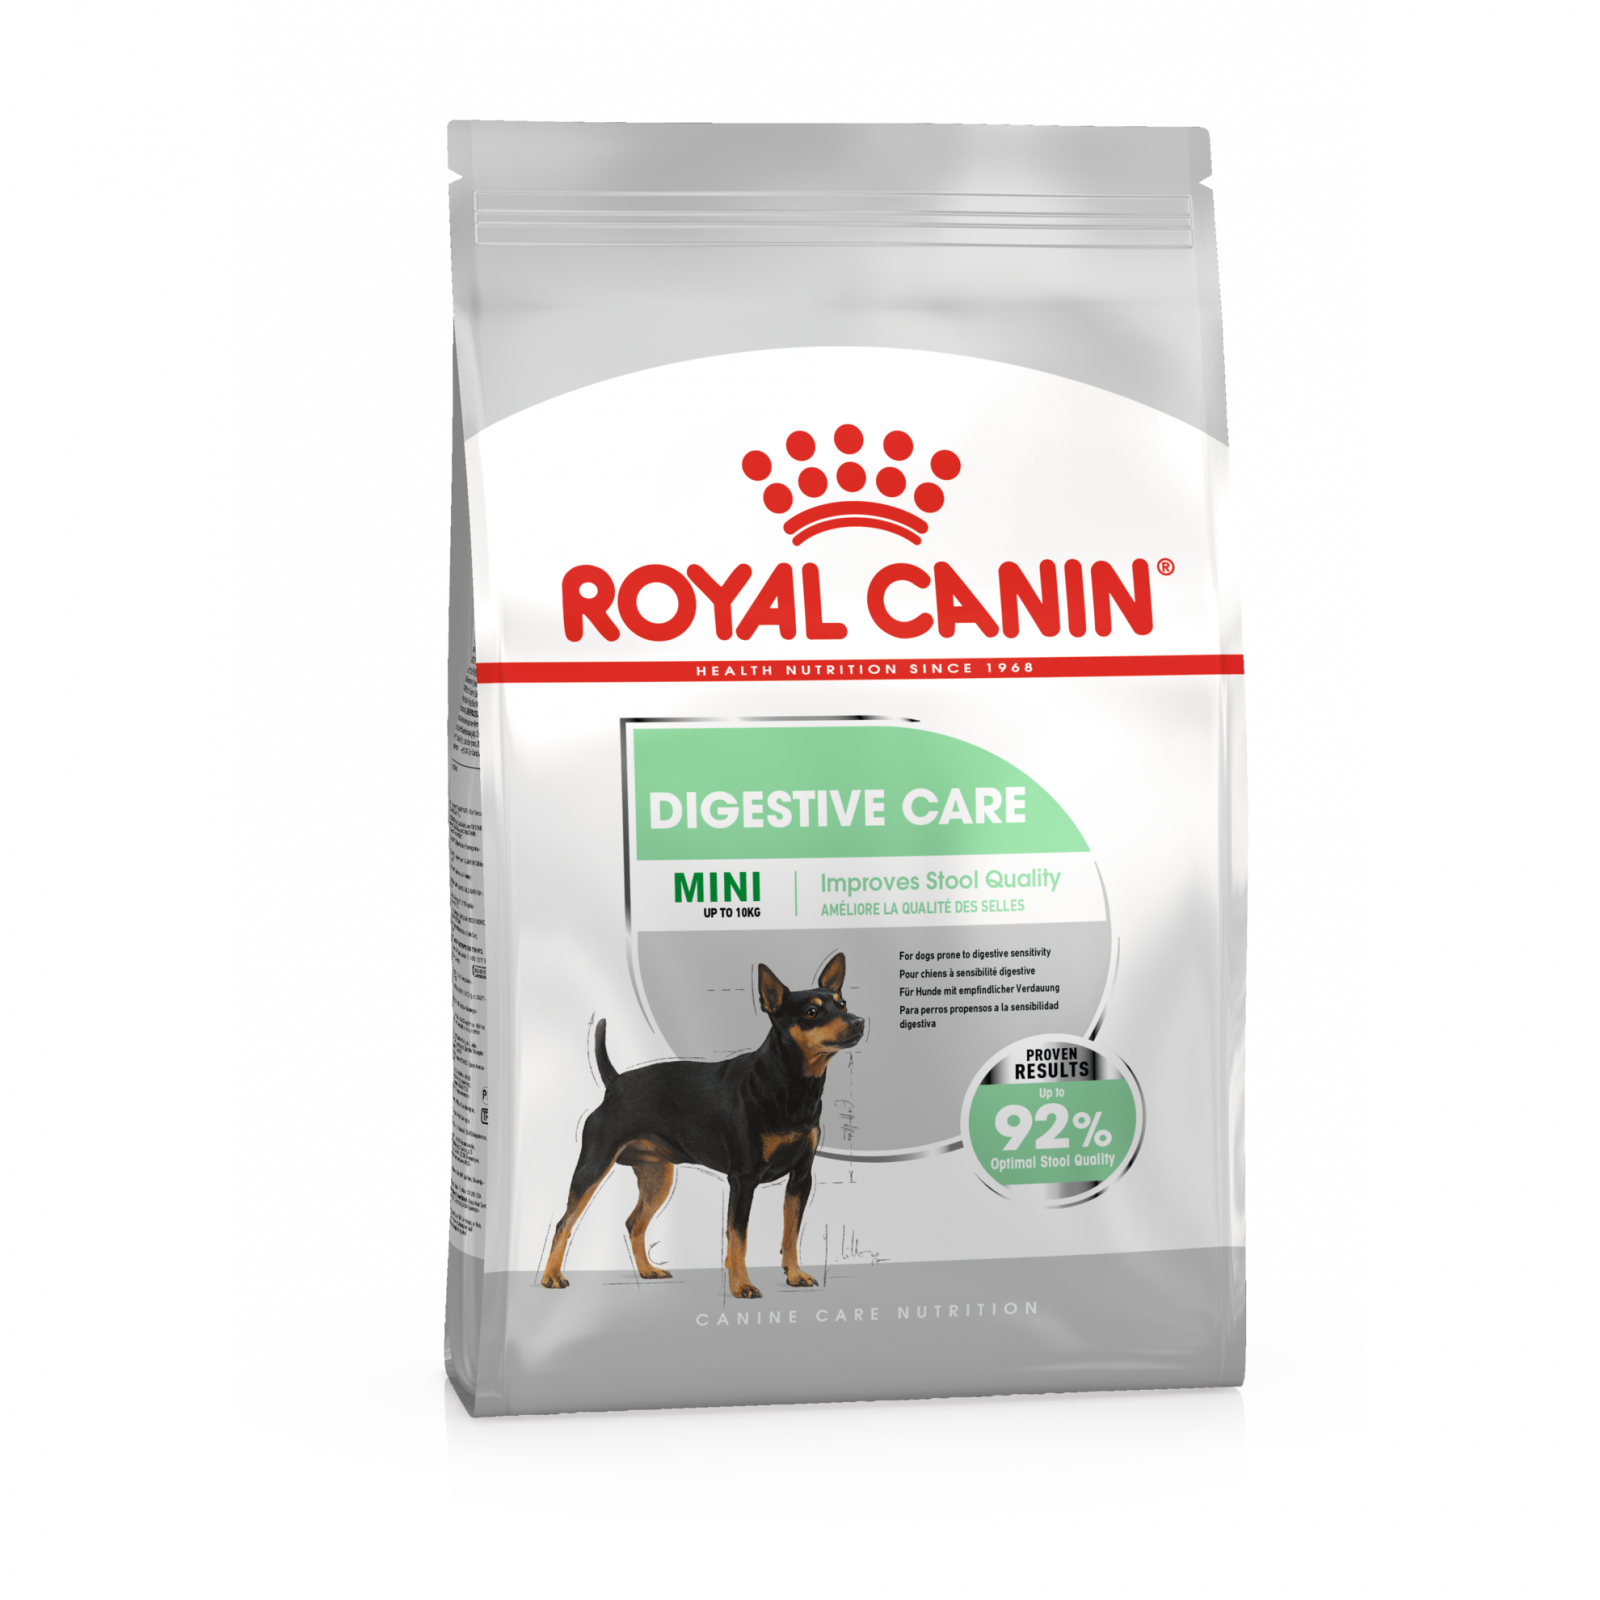 Royal Canin Royal Canin - Adult Mini Small Breed Sensible Digestion Dry Dog Food